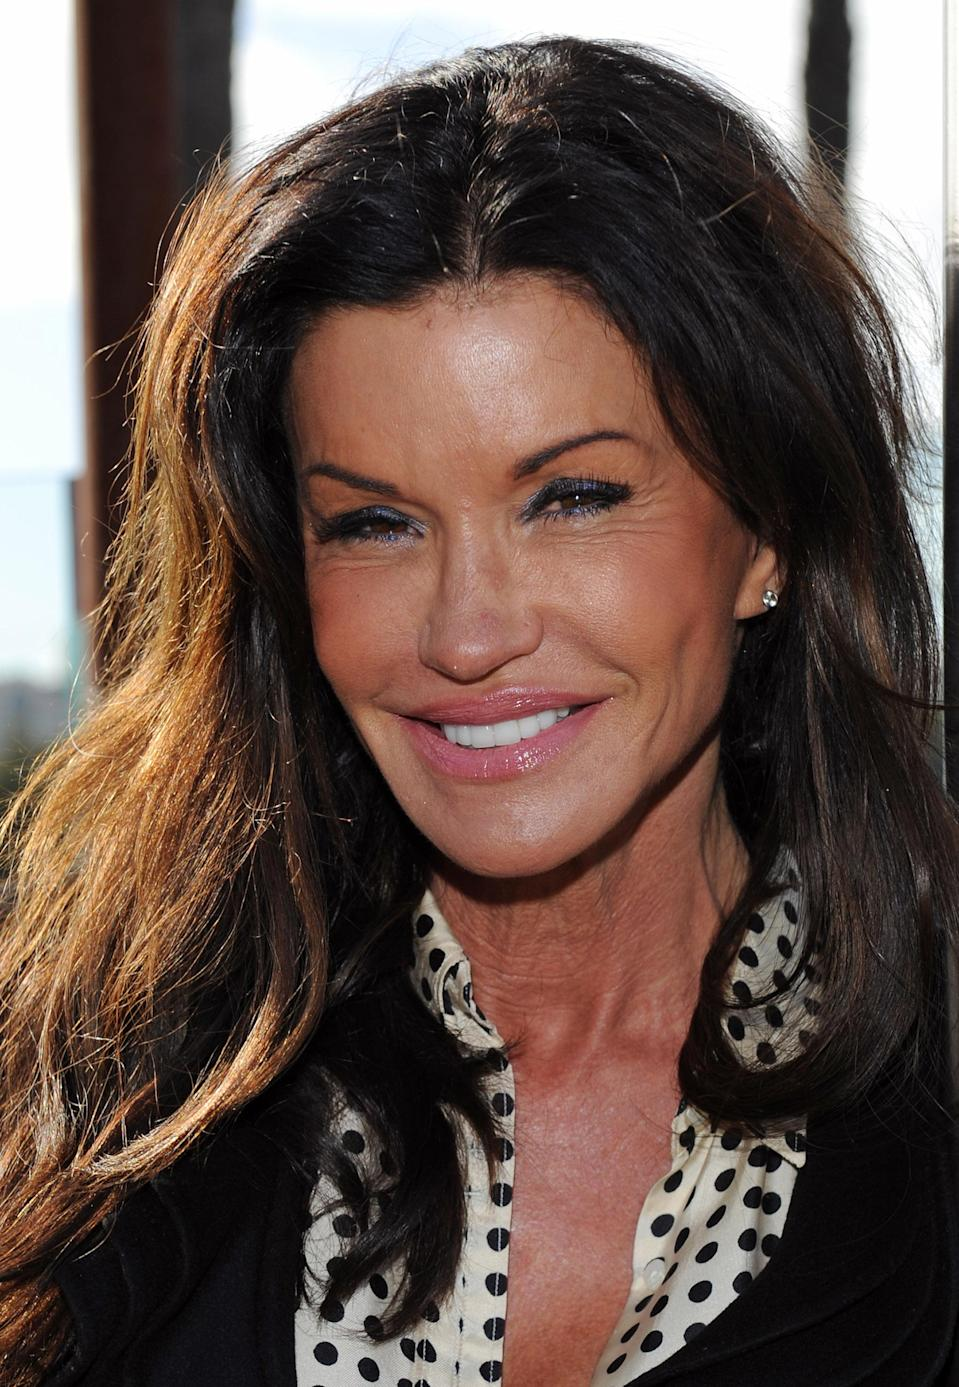 """<div class=""""caption-credit""""> Photo by: (Photo by JB Lacroix/WireImage)</div>Janice Dickenson was another early proponent of Botox. [I've gotten] Botox every six months since it became available,"""" she told <i>People</i> in 2004. """"I was the first in line. If it meant keeping me young, I was the first to sign up. I live for Botox."""""""